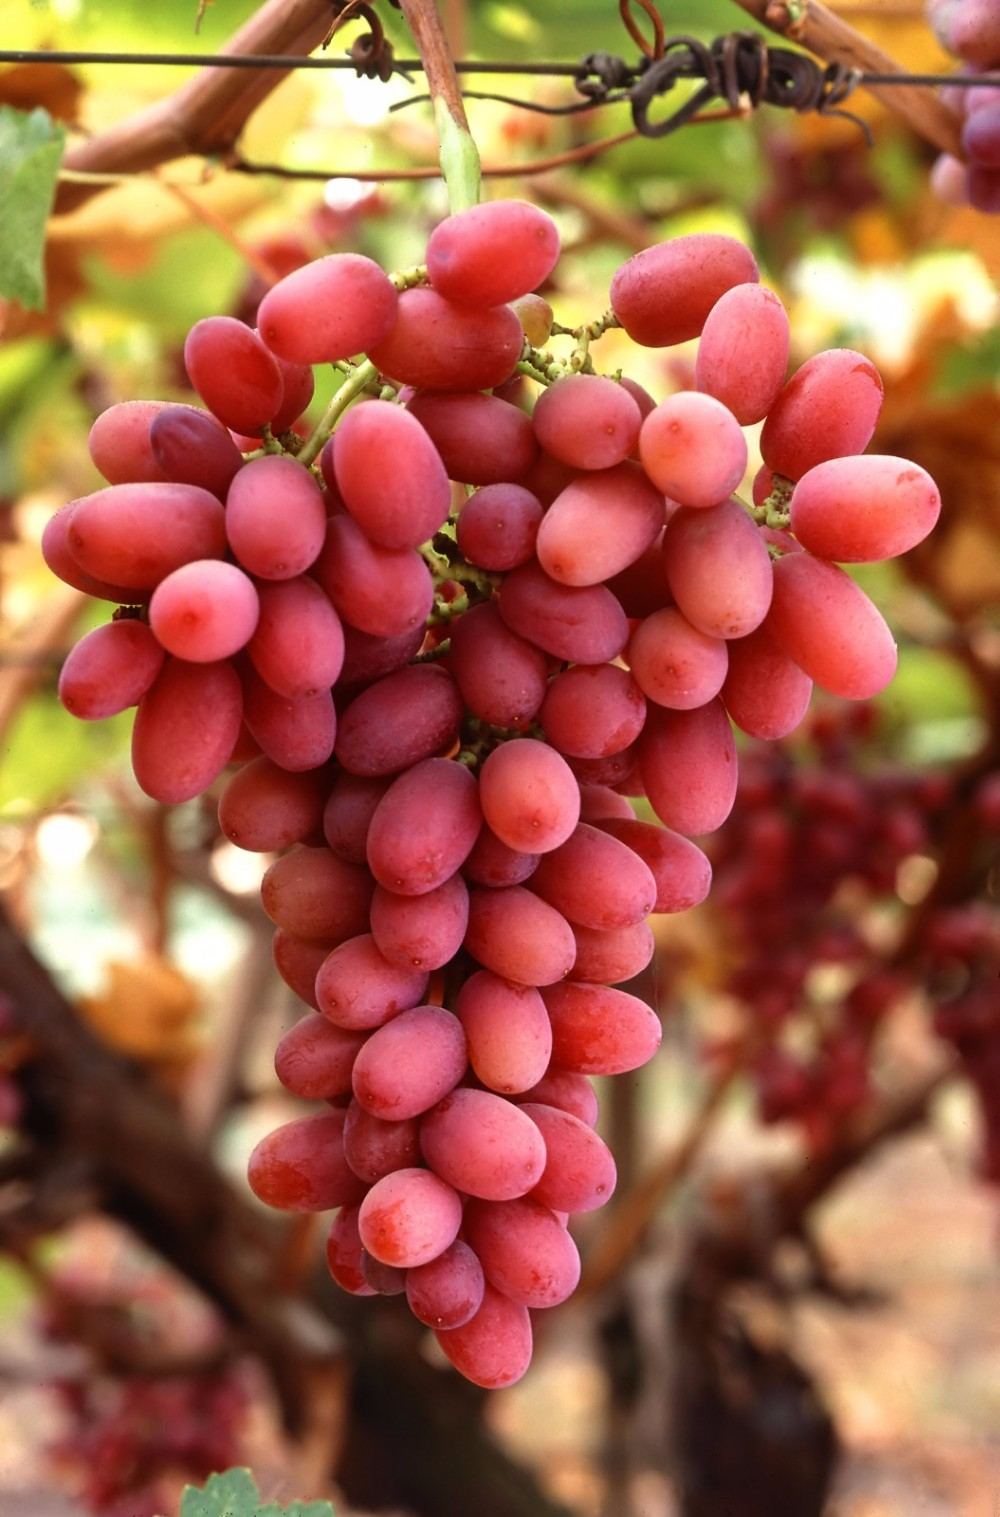 EGYPT FRESH CROPE 2016..red Color and Fresh Style Grapes seedless grapes